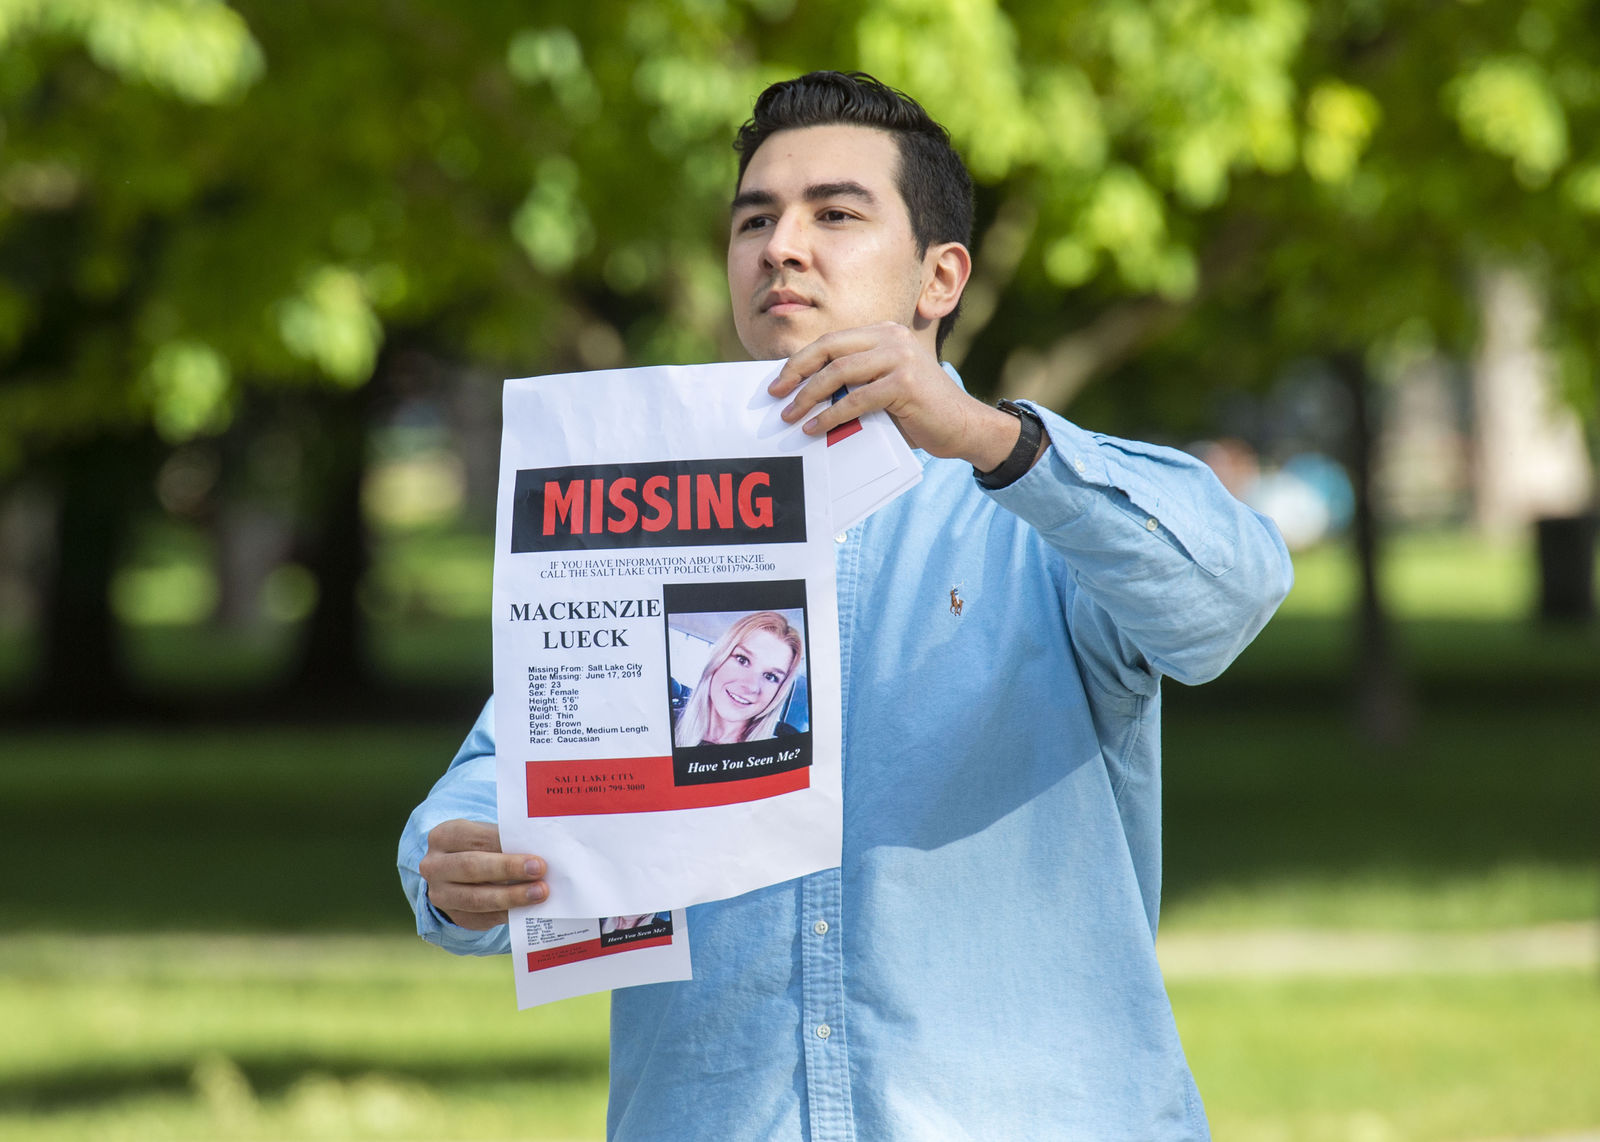 In this Saturday, June 22, 2019 photo, Nate Crispo holds a holds a sign with Mackenzie Lueck's photo in Liberty Park in Salt Lake City. Police and friends are investigating the disappearance of the 23-year-old University of Utah student, whose last communication with her family said she arrived at Salt Lake City International Airport on Monday, June 17. (Rick Egan/The Salt Lake Tribune via AP)